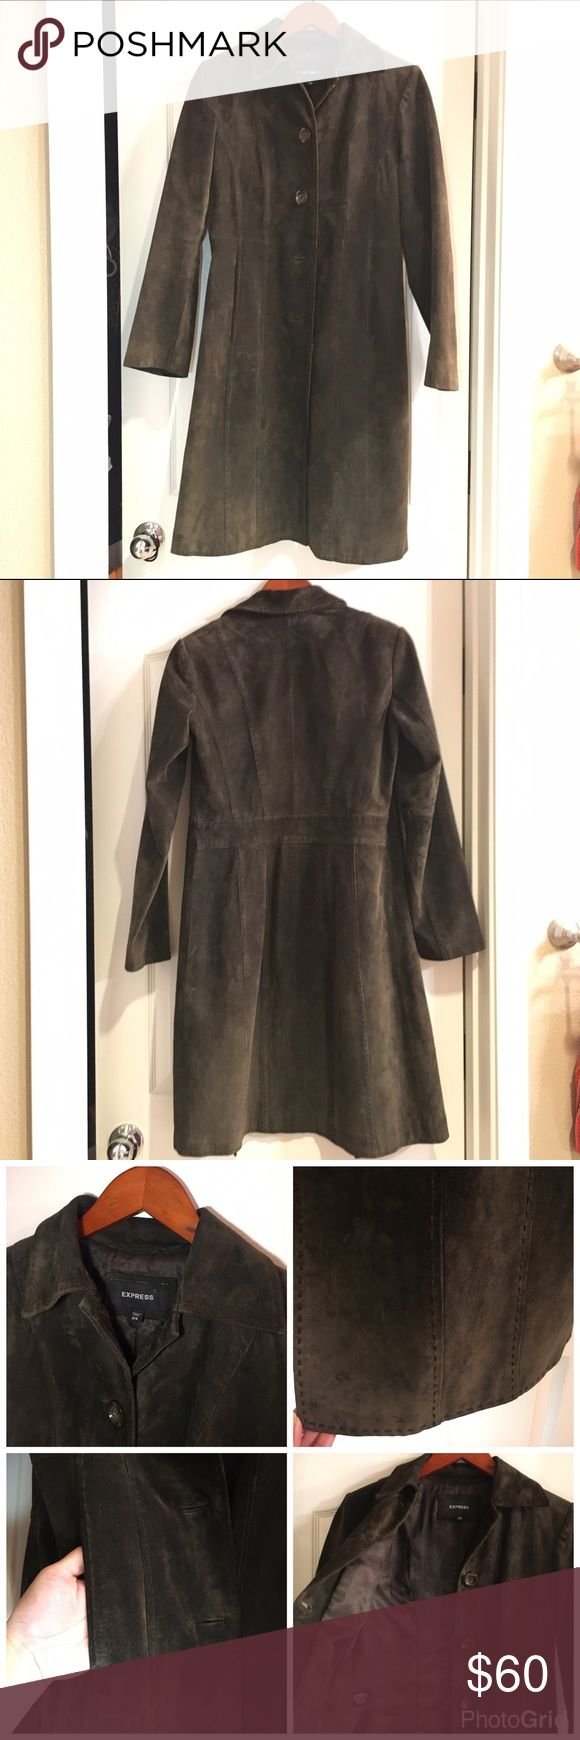 Express women's leather coat size 3/4 brown This coat has been well loved and well  taken care of.  Beautiful 100% real suede. It's more of a chocolate brown and it's so flattering and drapes real well.  Has 2 pockets. Express Jackets & Coats